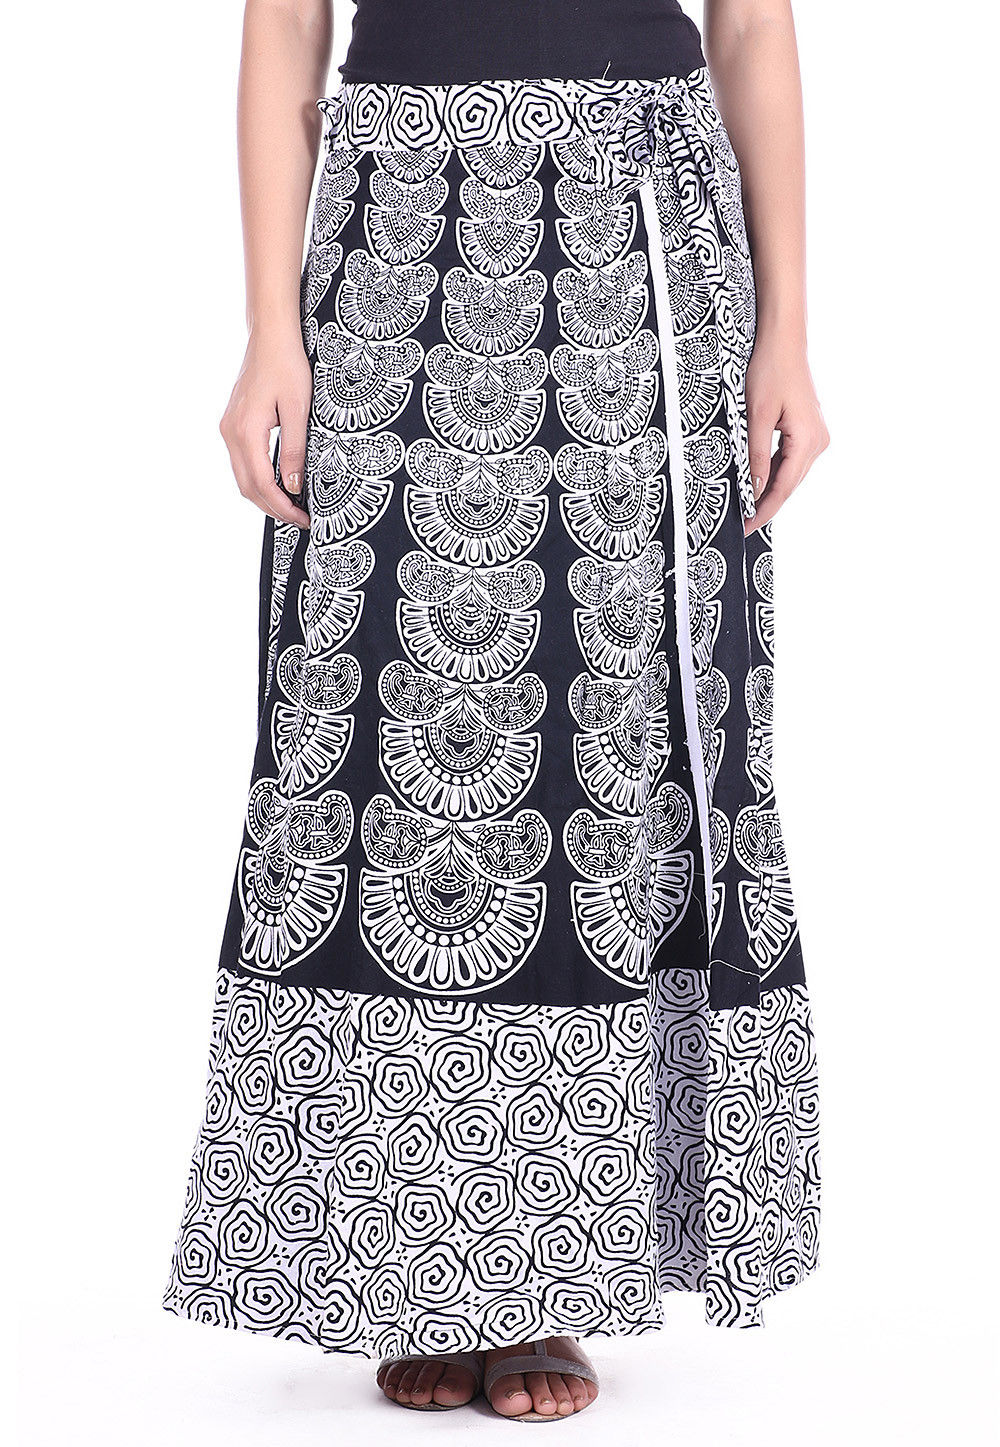 Abstract Printed Cotton Wrap Around Skirt in Black and White